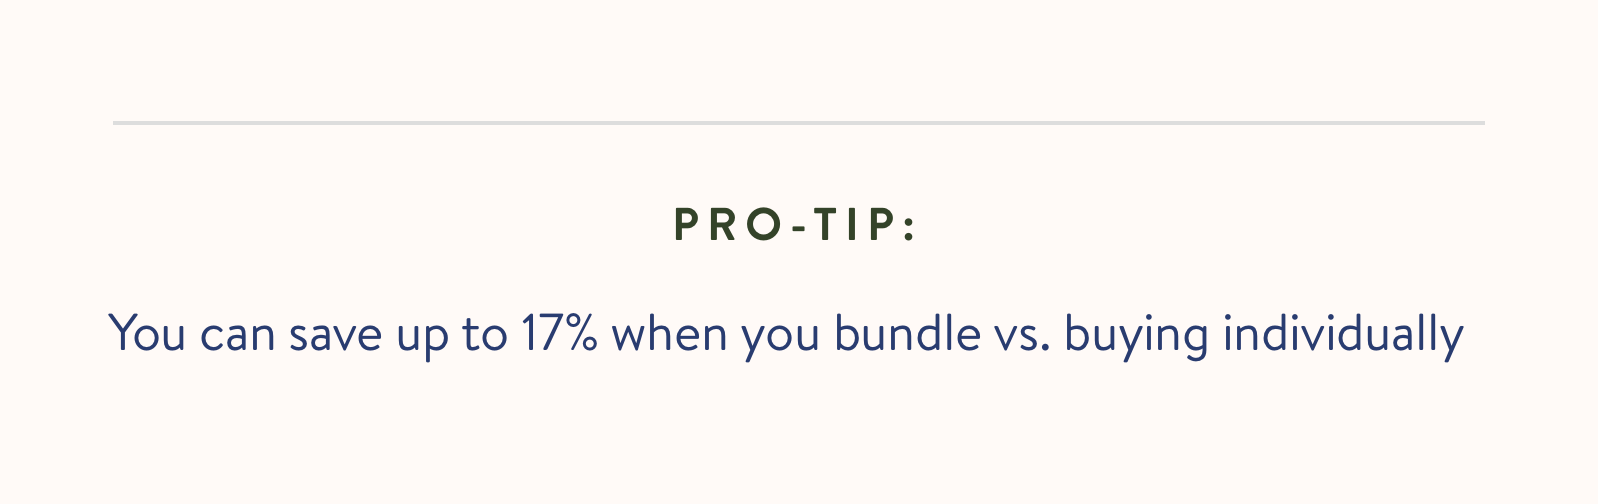 You can save up to 17% when you bundle vs. buying individually